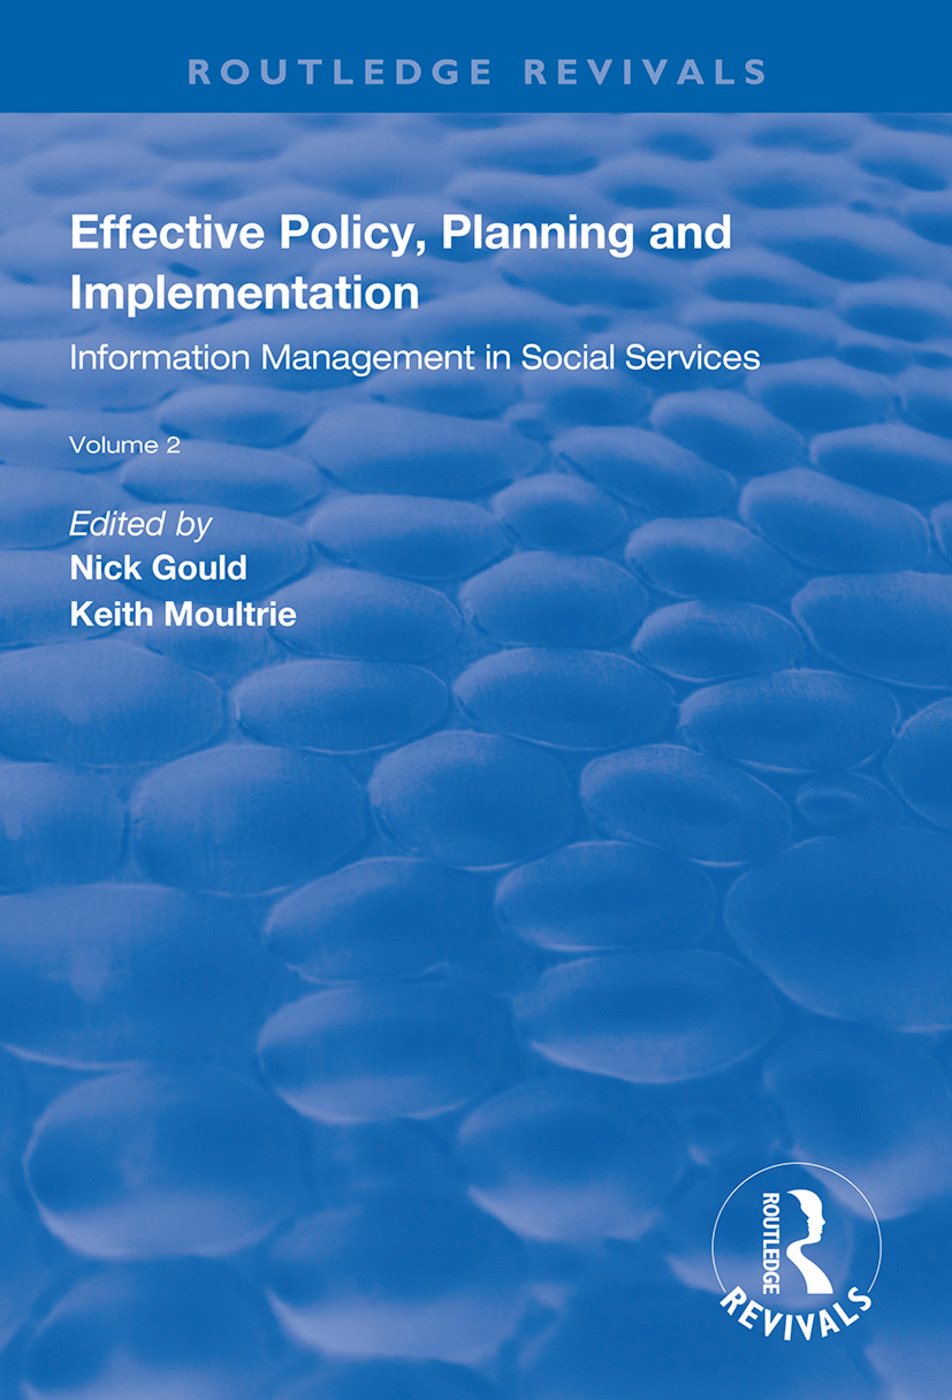 Effective Policy, Planning and Implementation